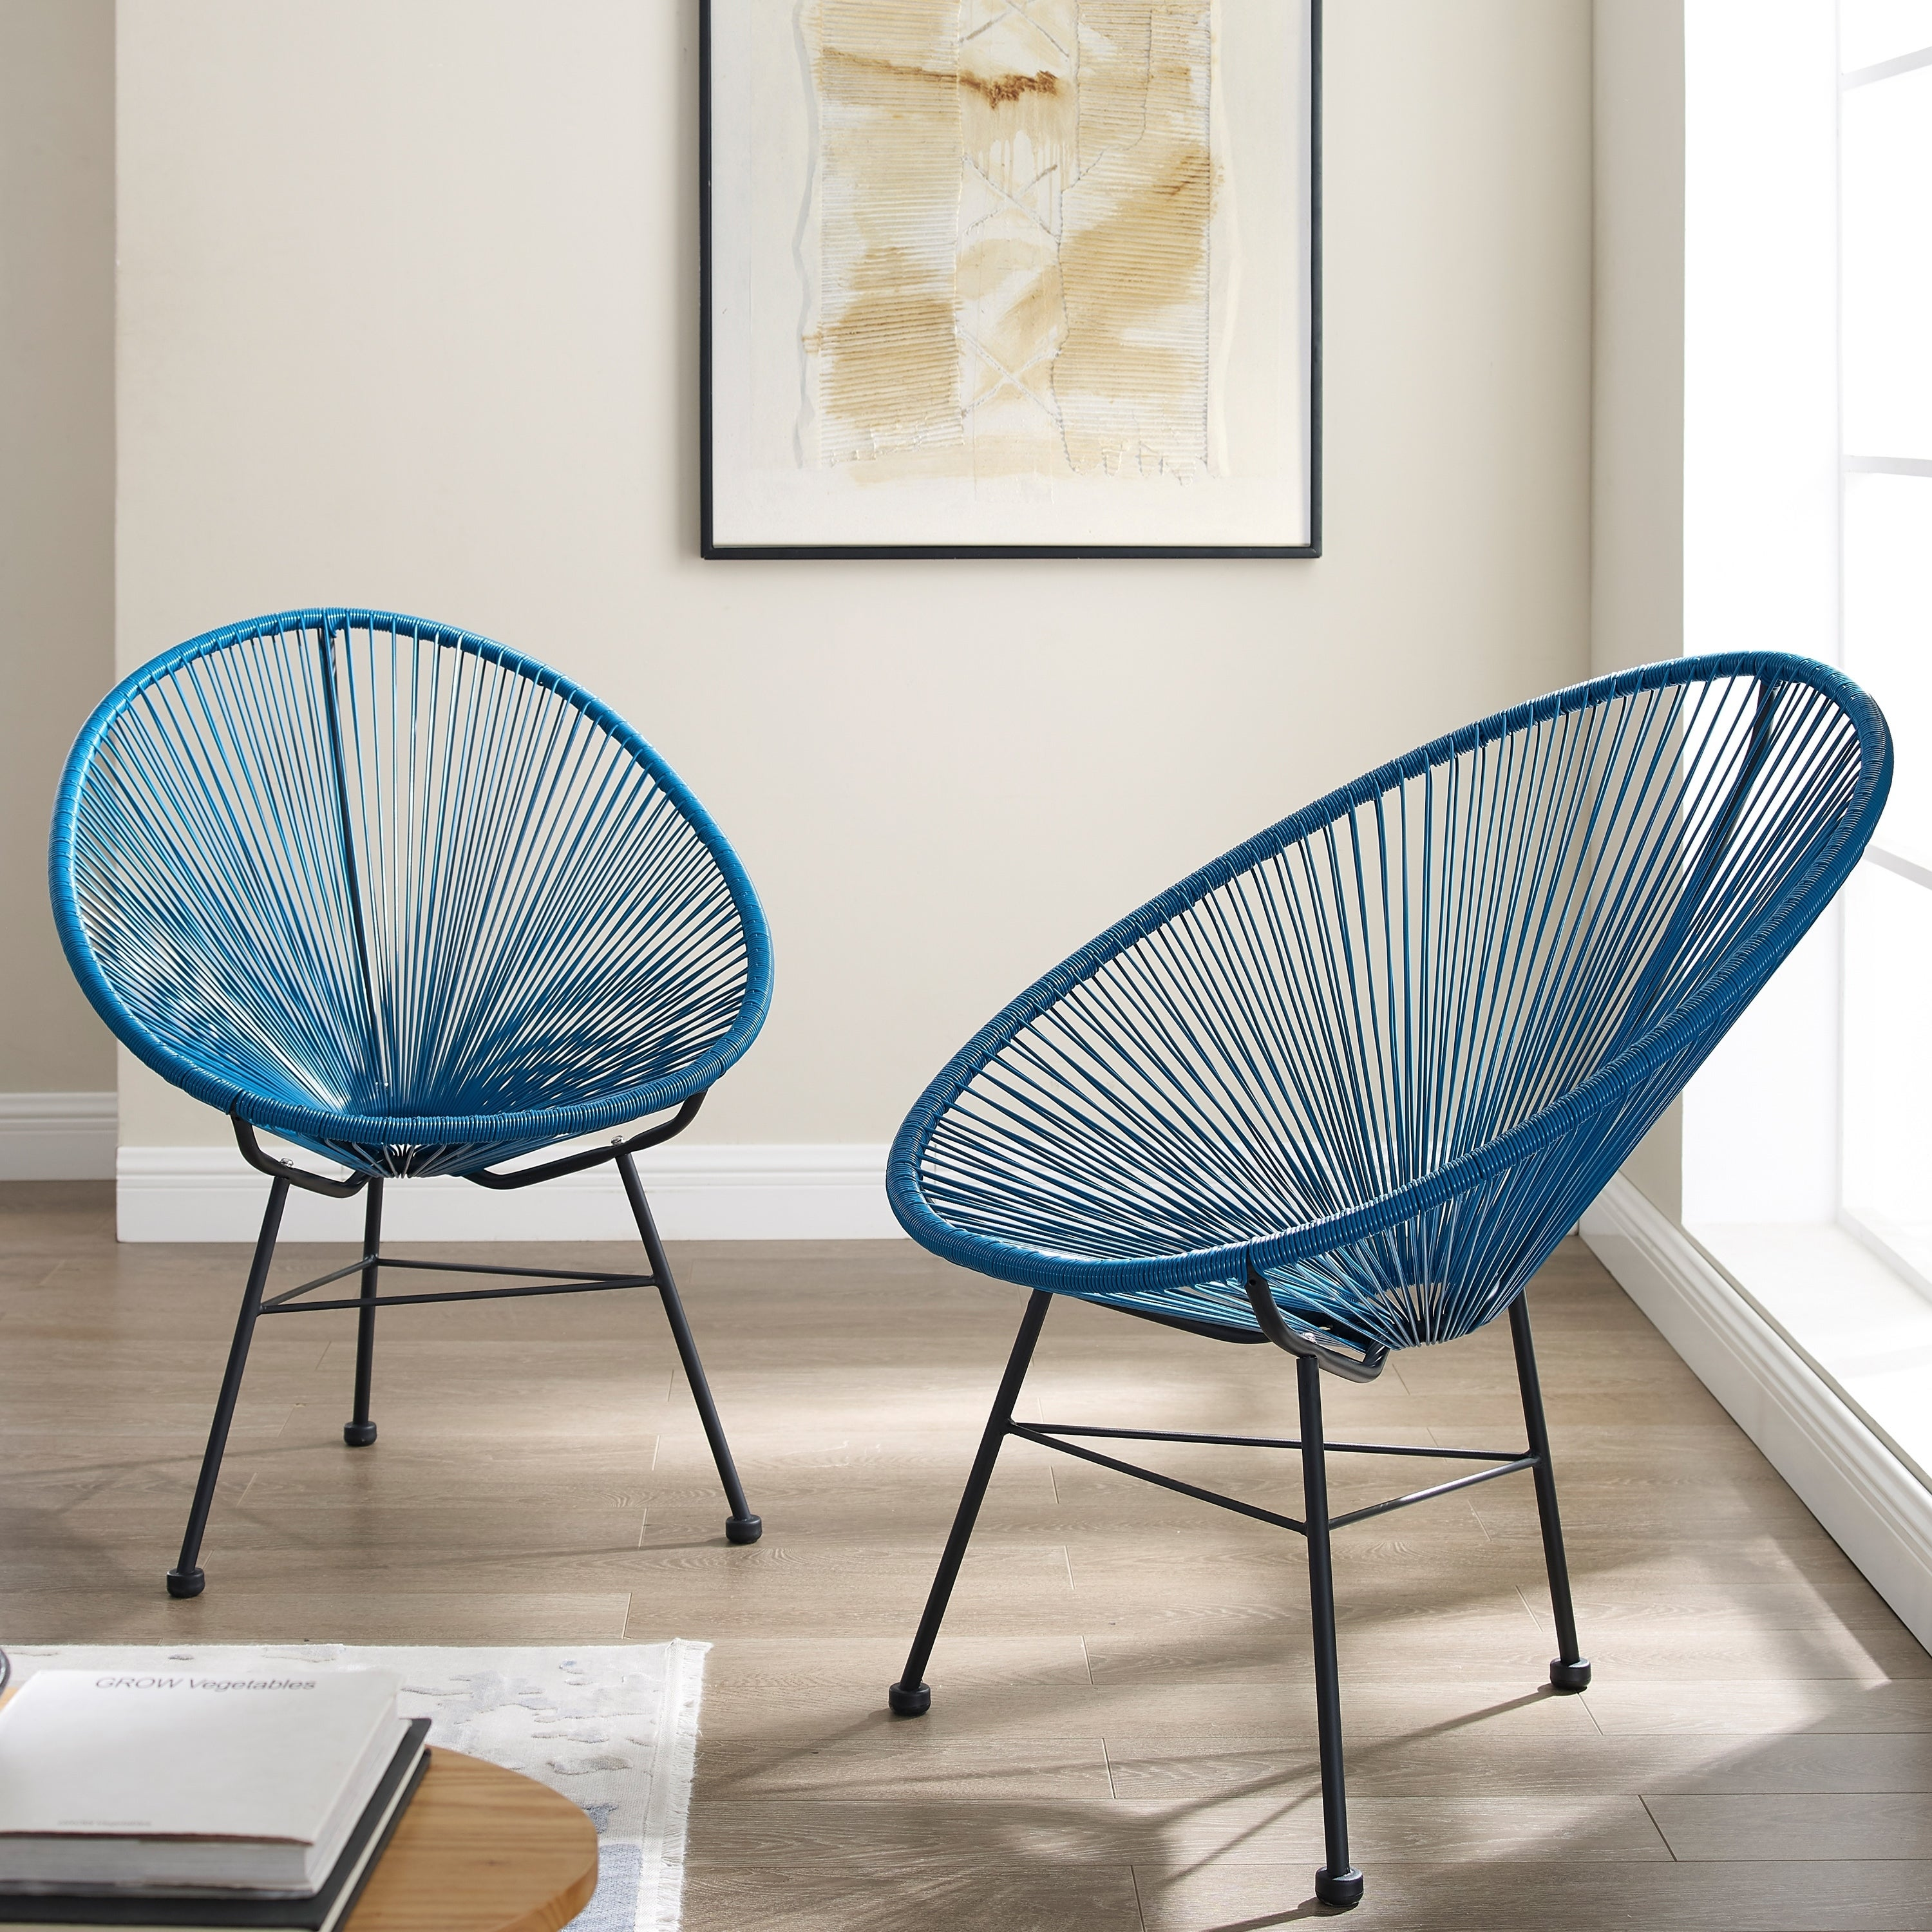 6223167b188 Shop Sarcelles Modern Wicker Patio Chairs by Corvus (Set of 2) - Free  Shipping Today - Overstock - 17805643